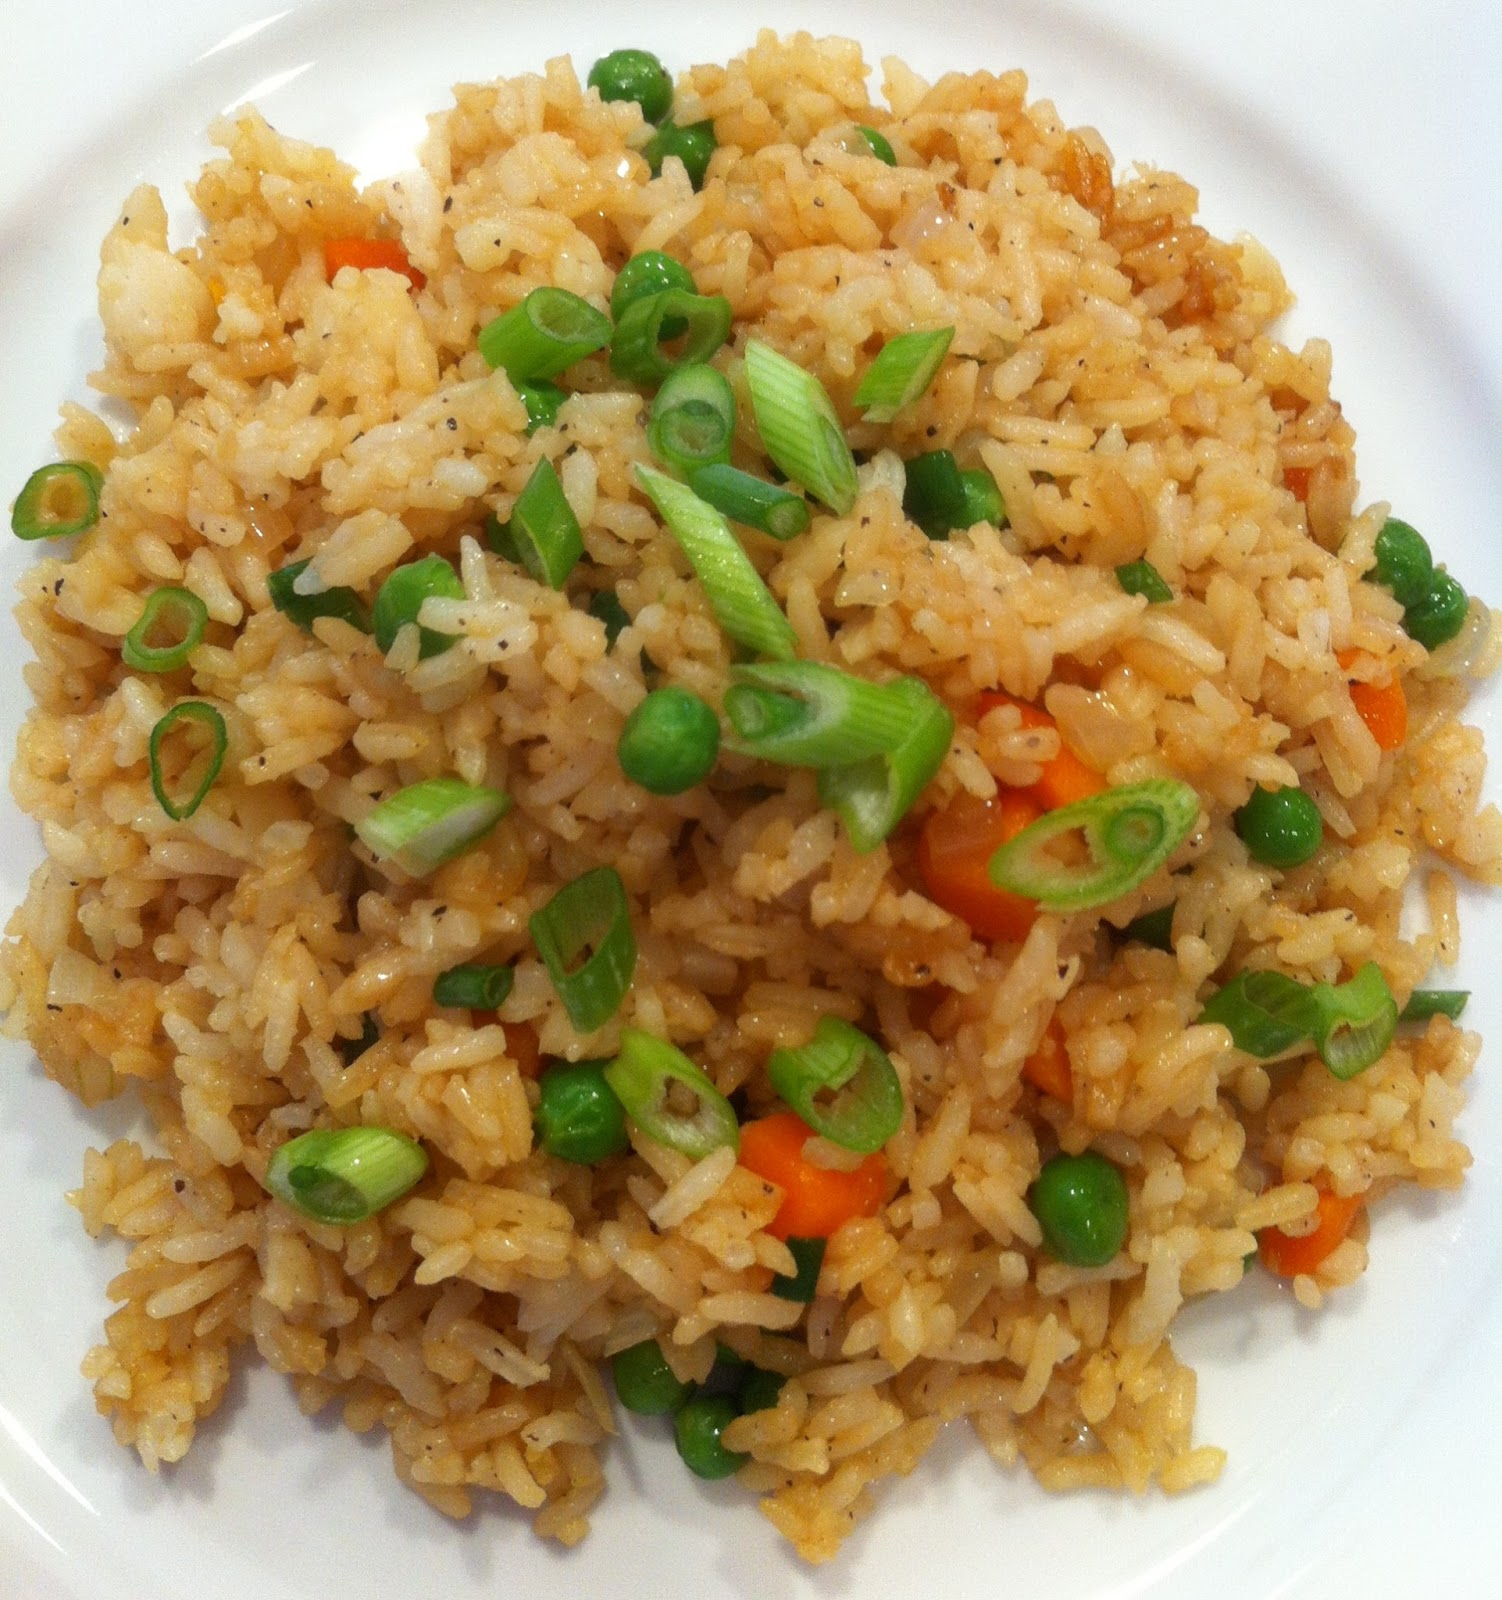 Richly blessed hibachi style fried rice 15 minute meal our favorite thing was easily the fried rice and we were craving it one night like crazy so i googled itd found a really great and easy recipe ccuart Choice Image